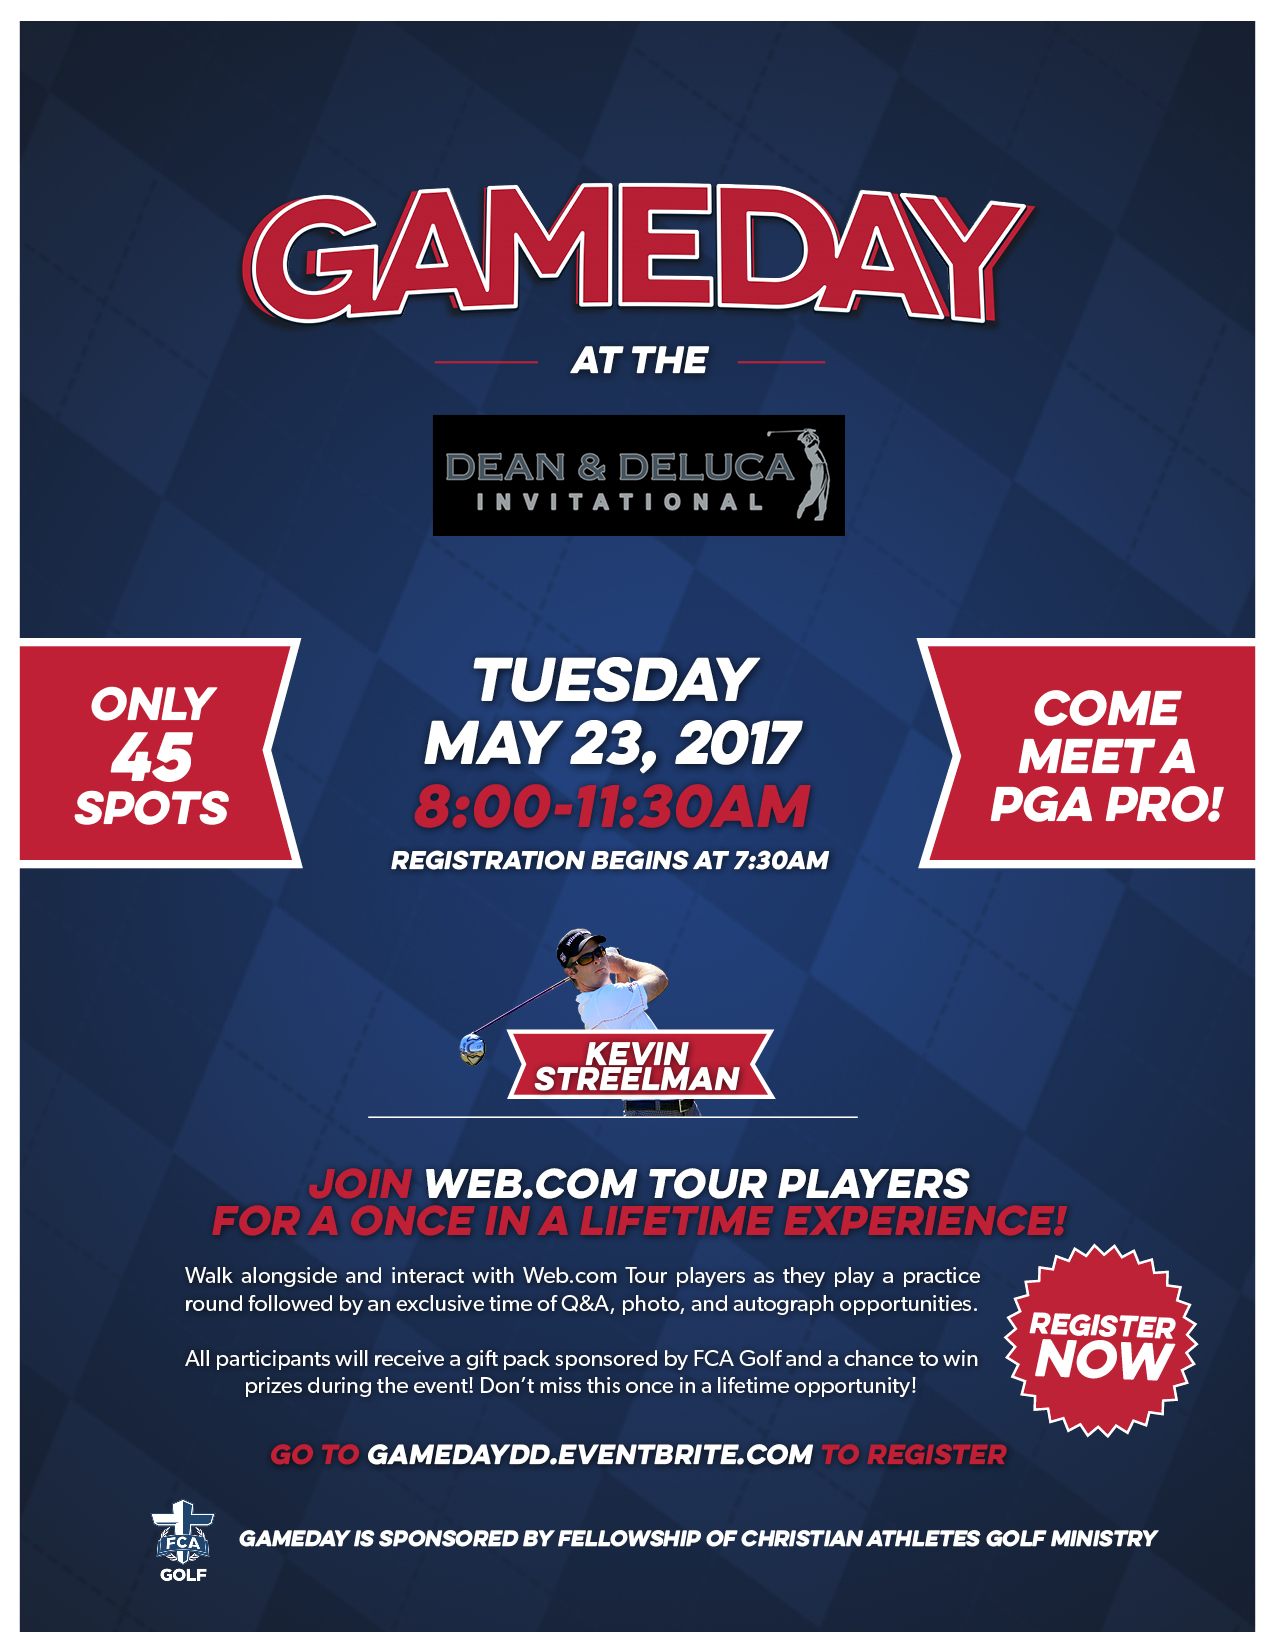 GameDay DD Flyer